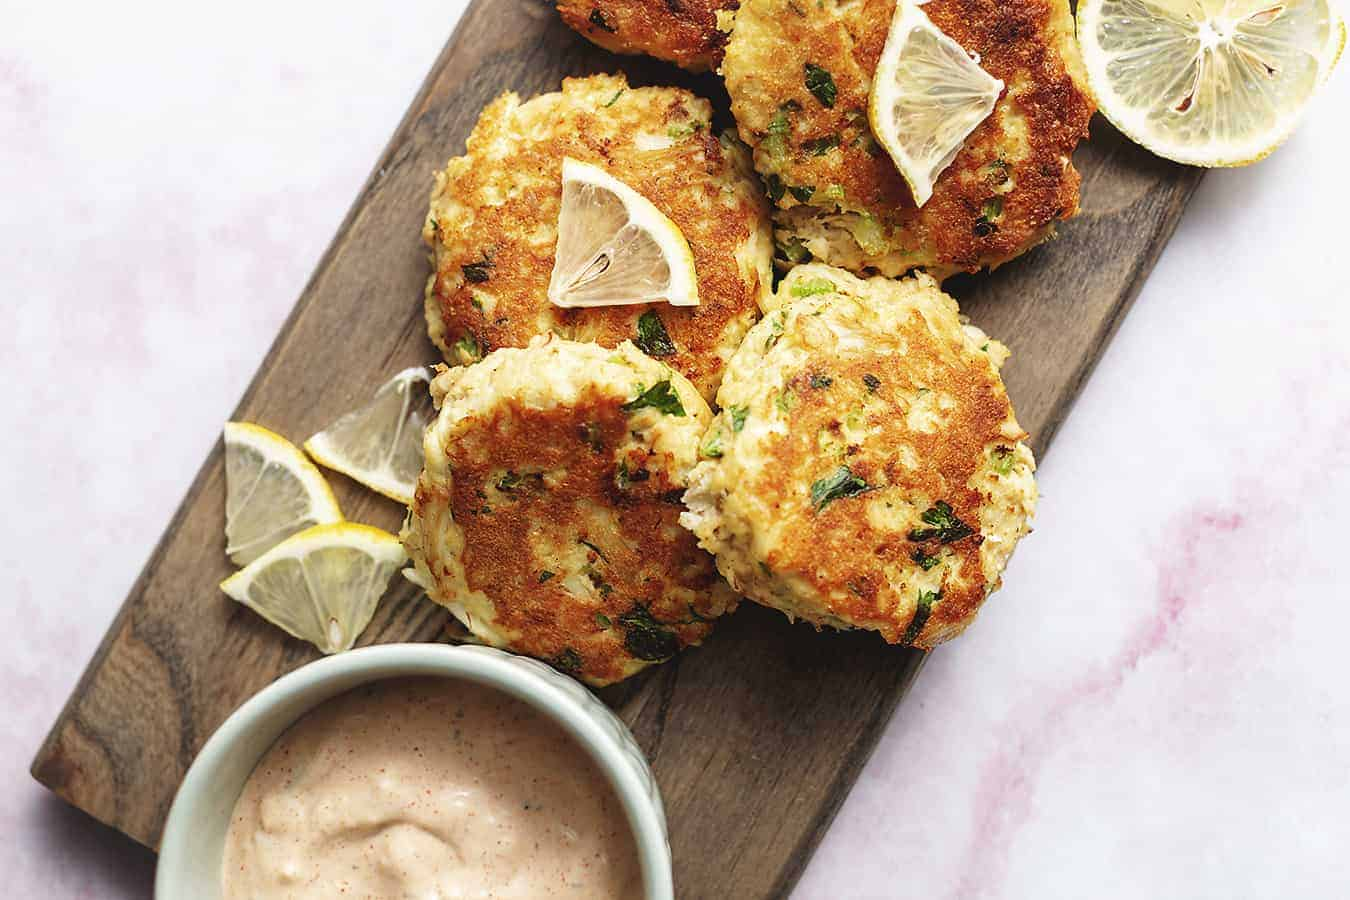 keto crab cakes garnished with remoulade sauce on a wood platter